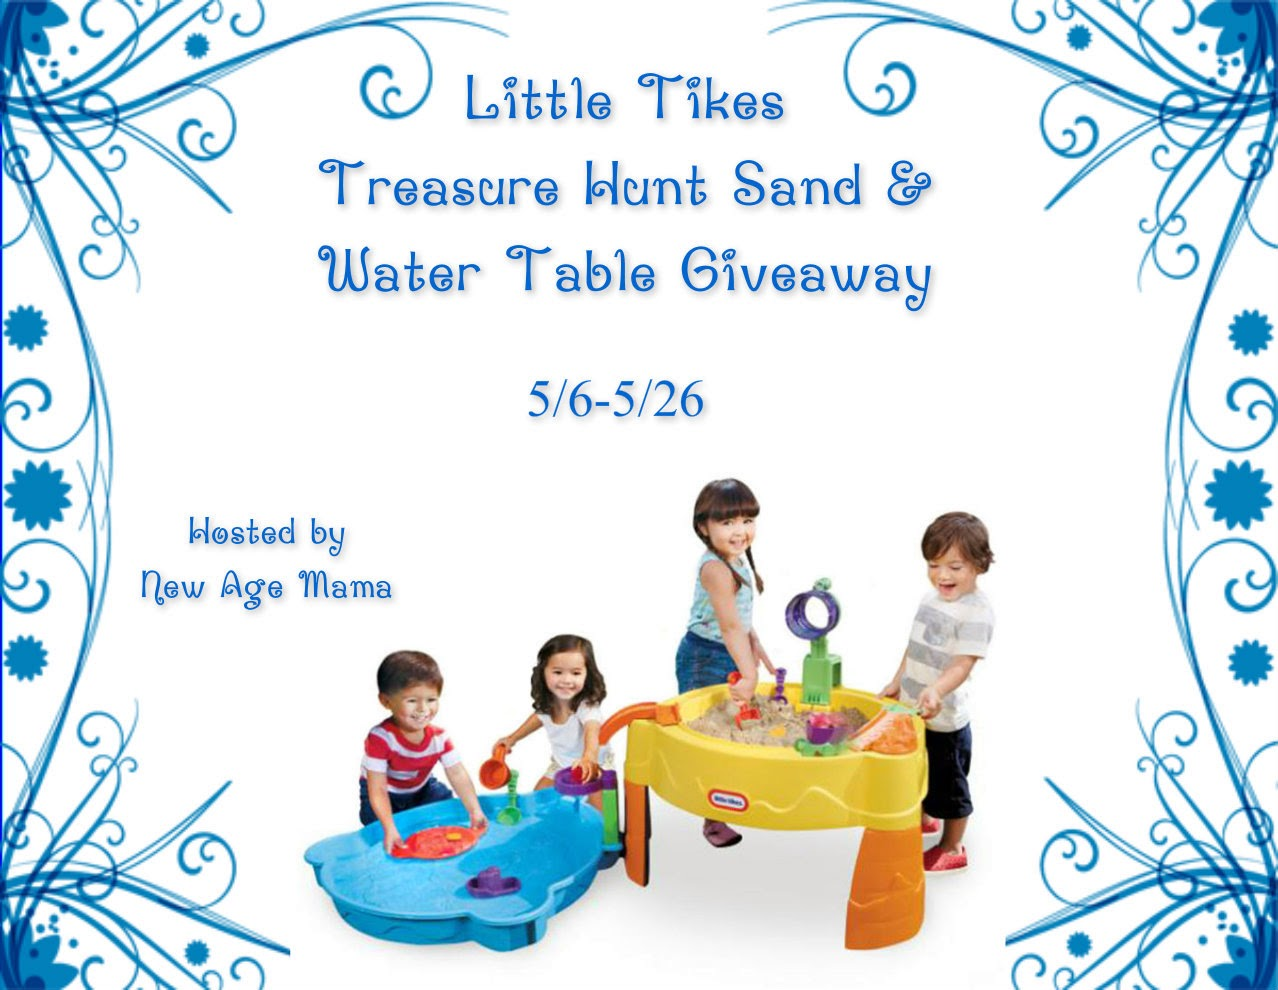 Win a Little Tike Treasure Hunt Sand & Water Table! | Whats Up ...